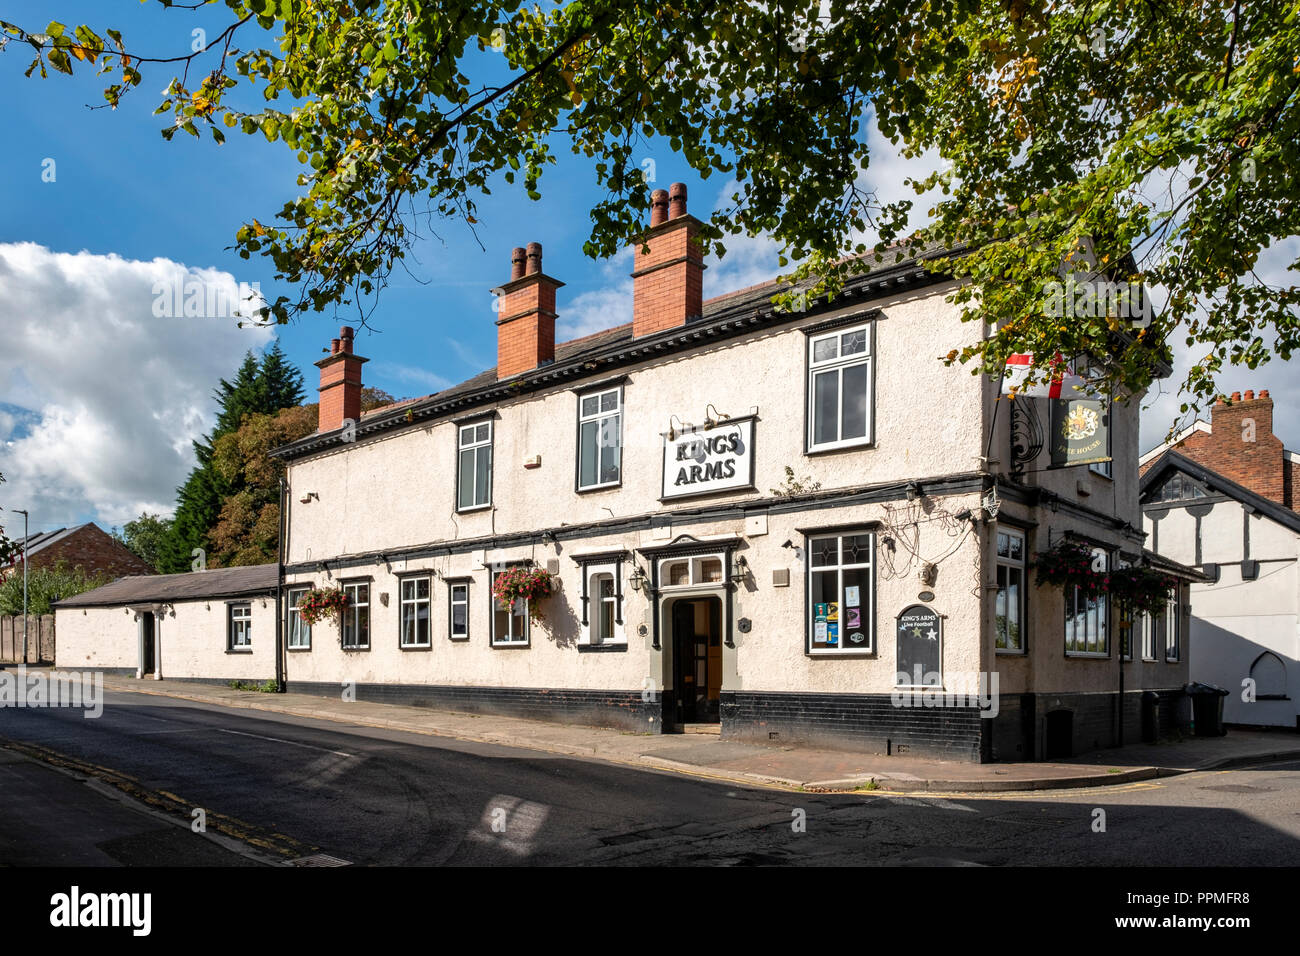 Kings Arms pub in Middlewich Cheshire UK - Stock Image